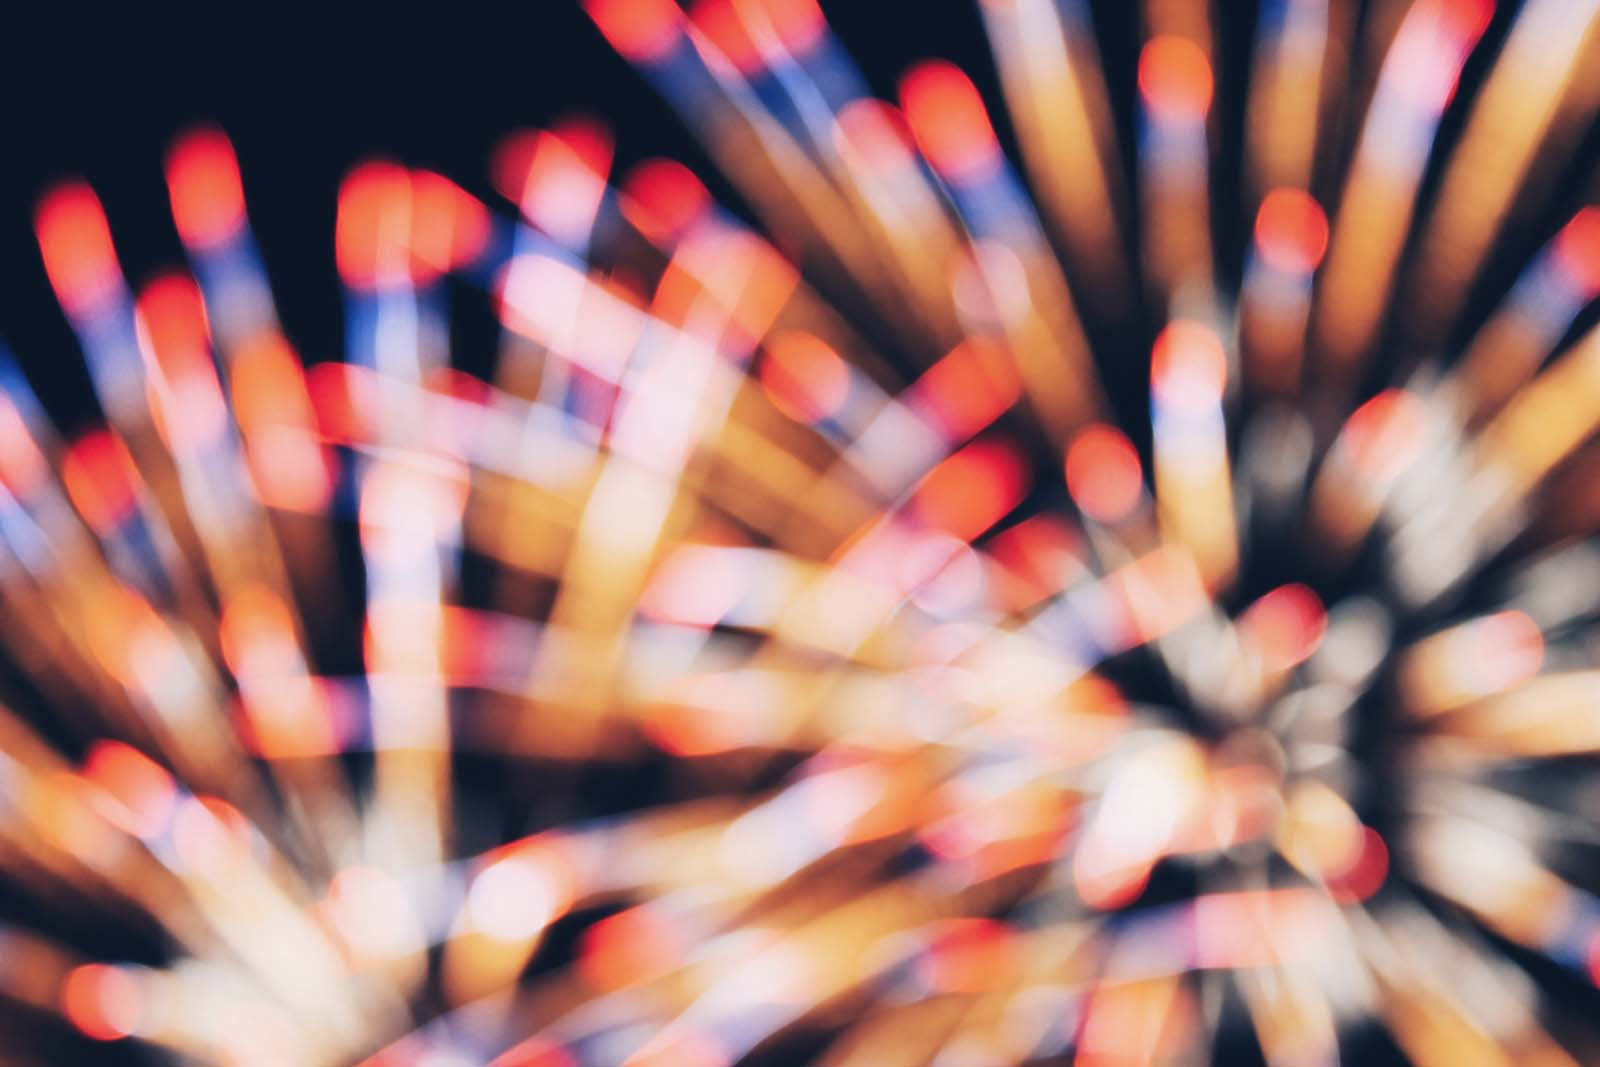 Will July continue to have Fireworks?